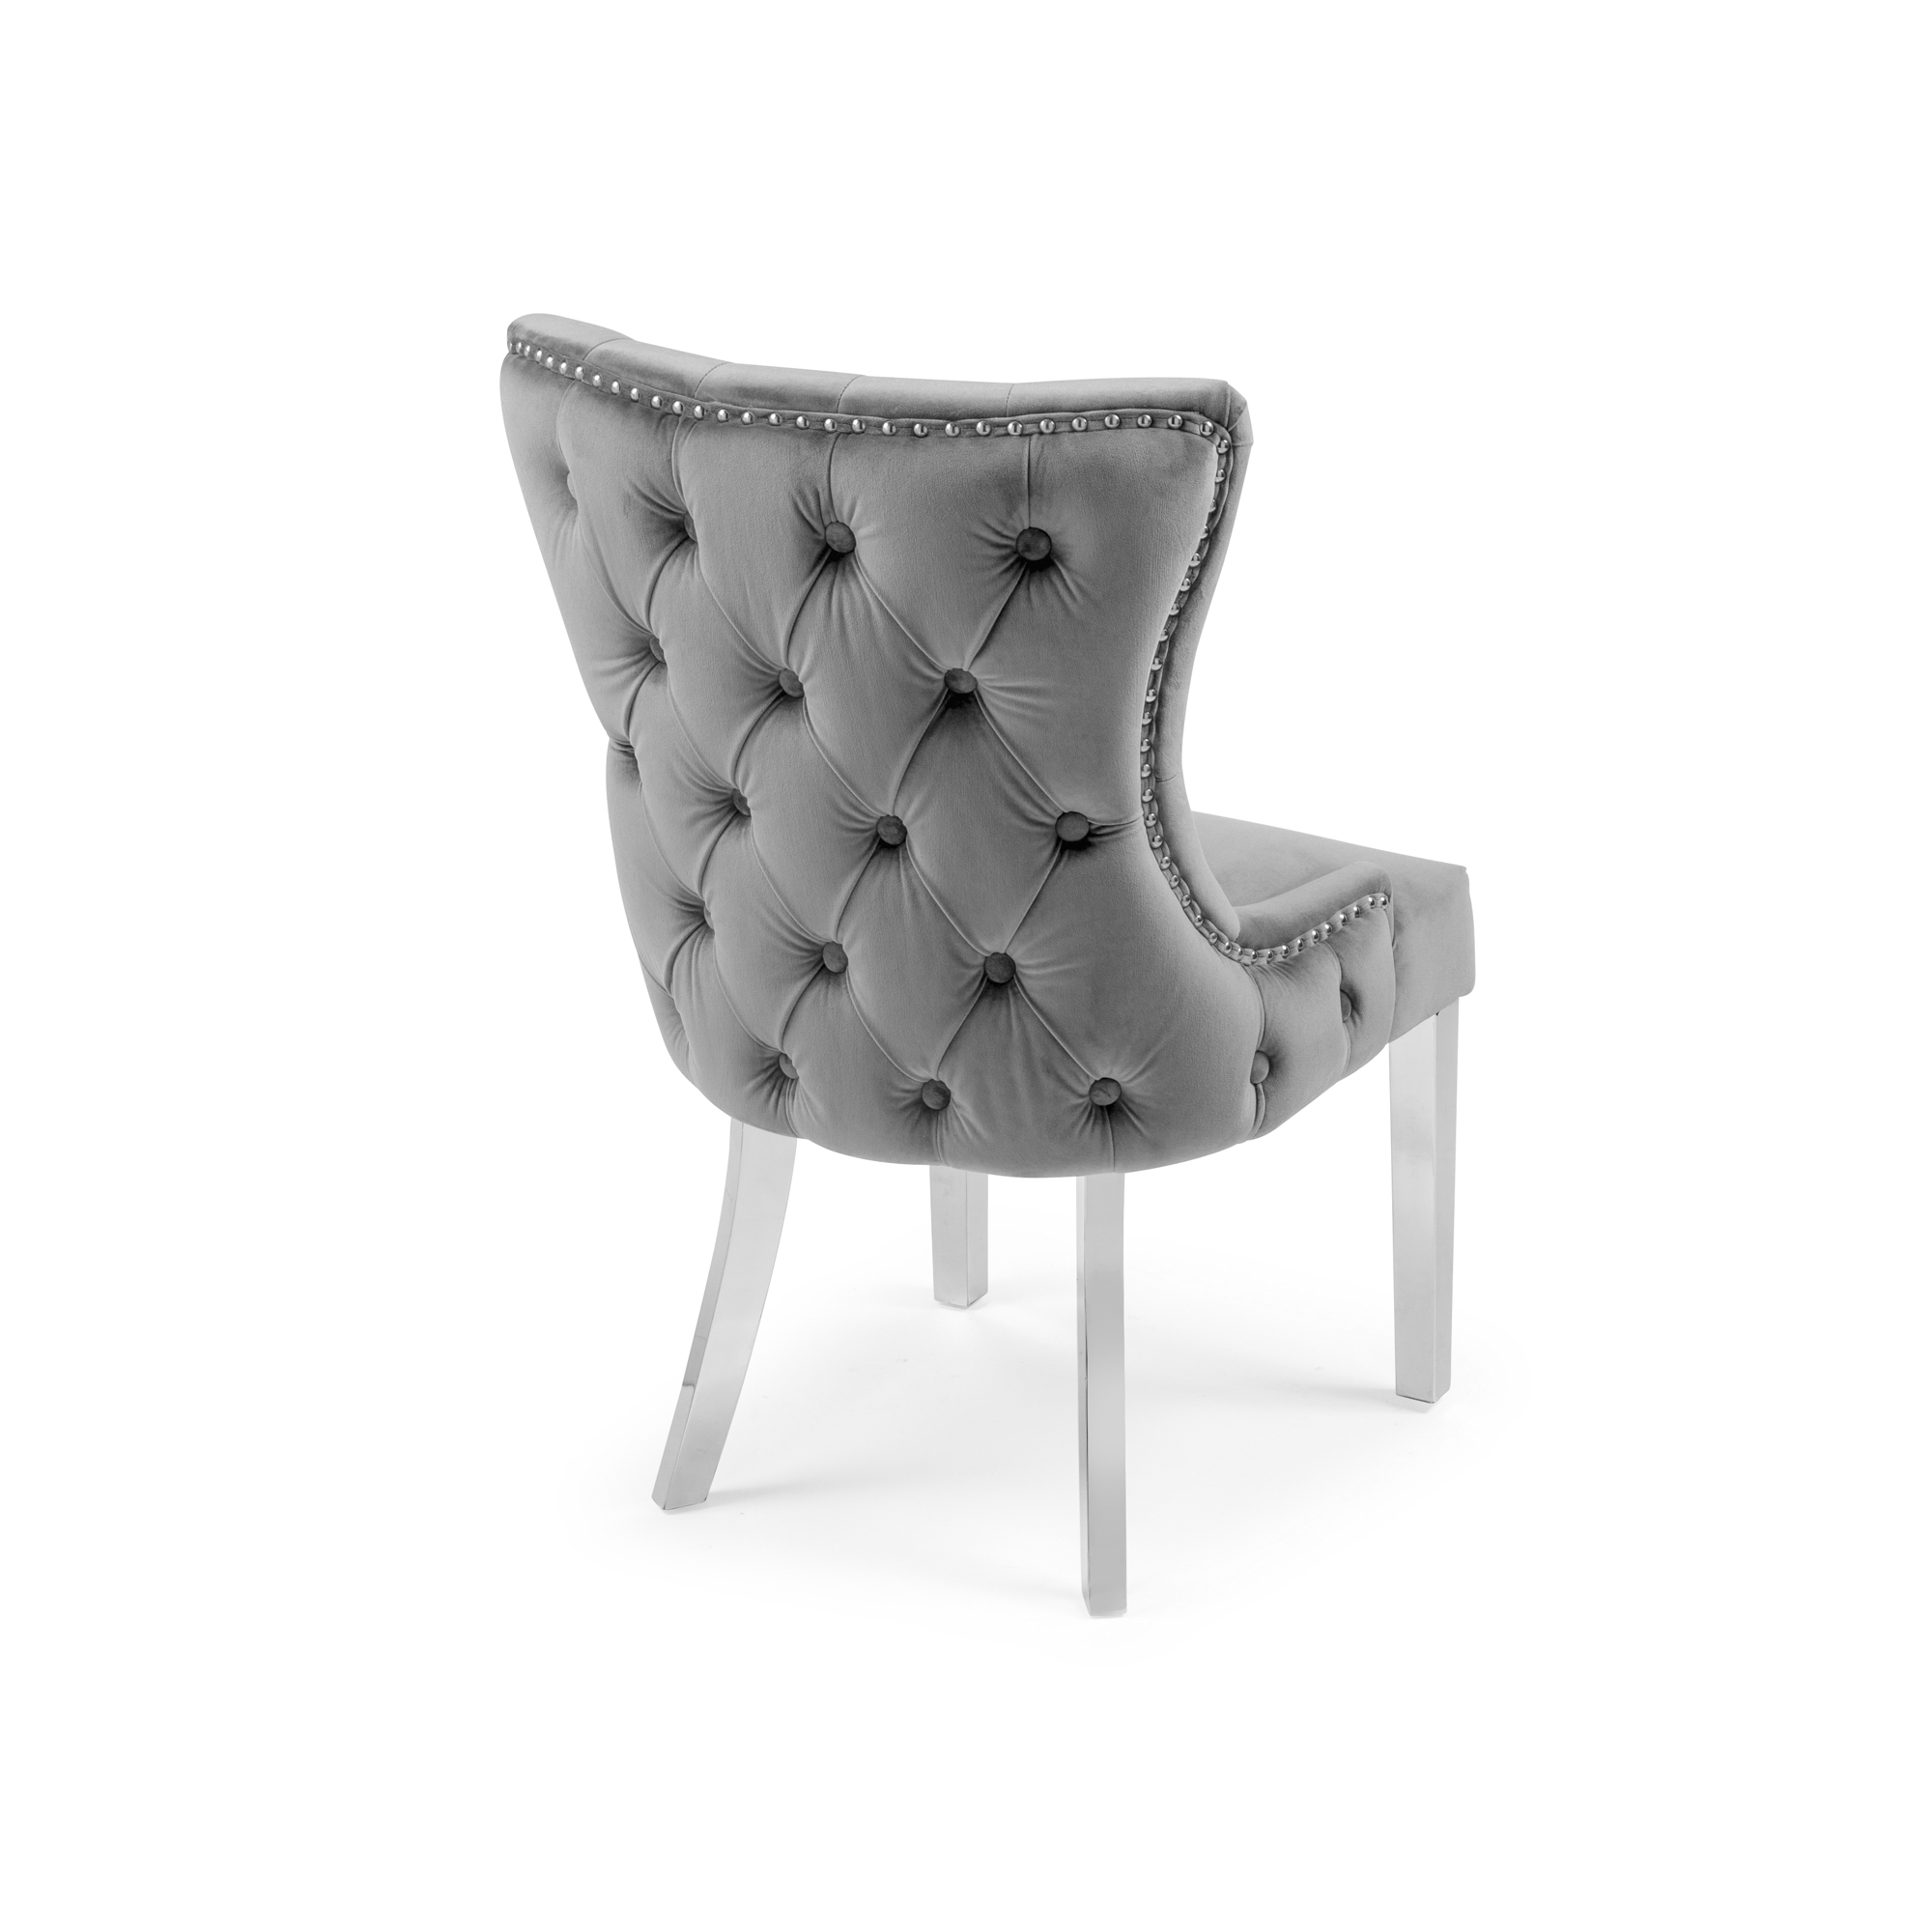 Knightsbridge Buttoned Grey Brushed Velvet Dining Chair with Polished Stainless Steel Legs